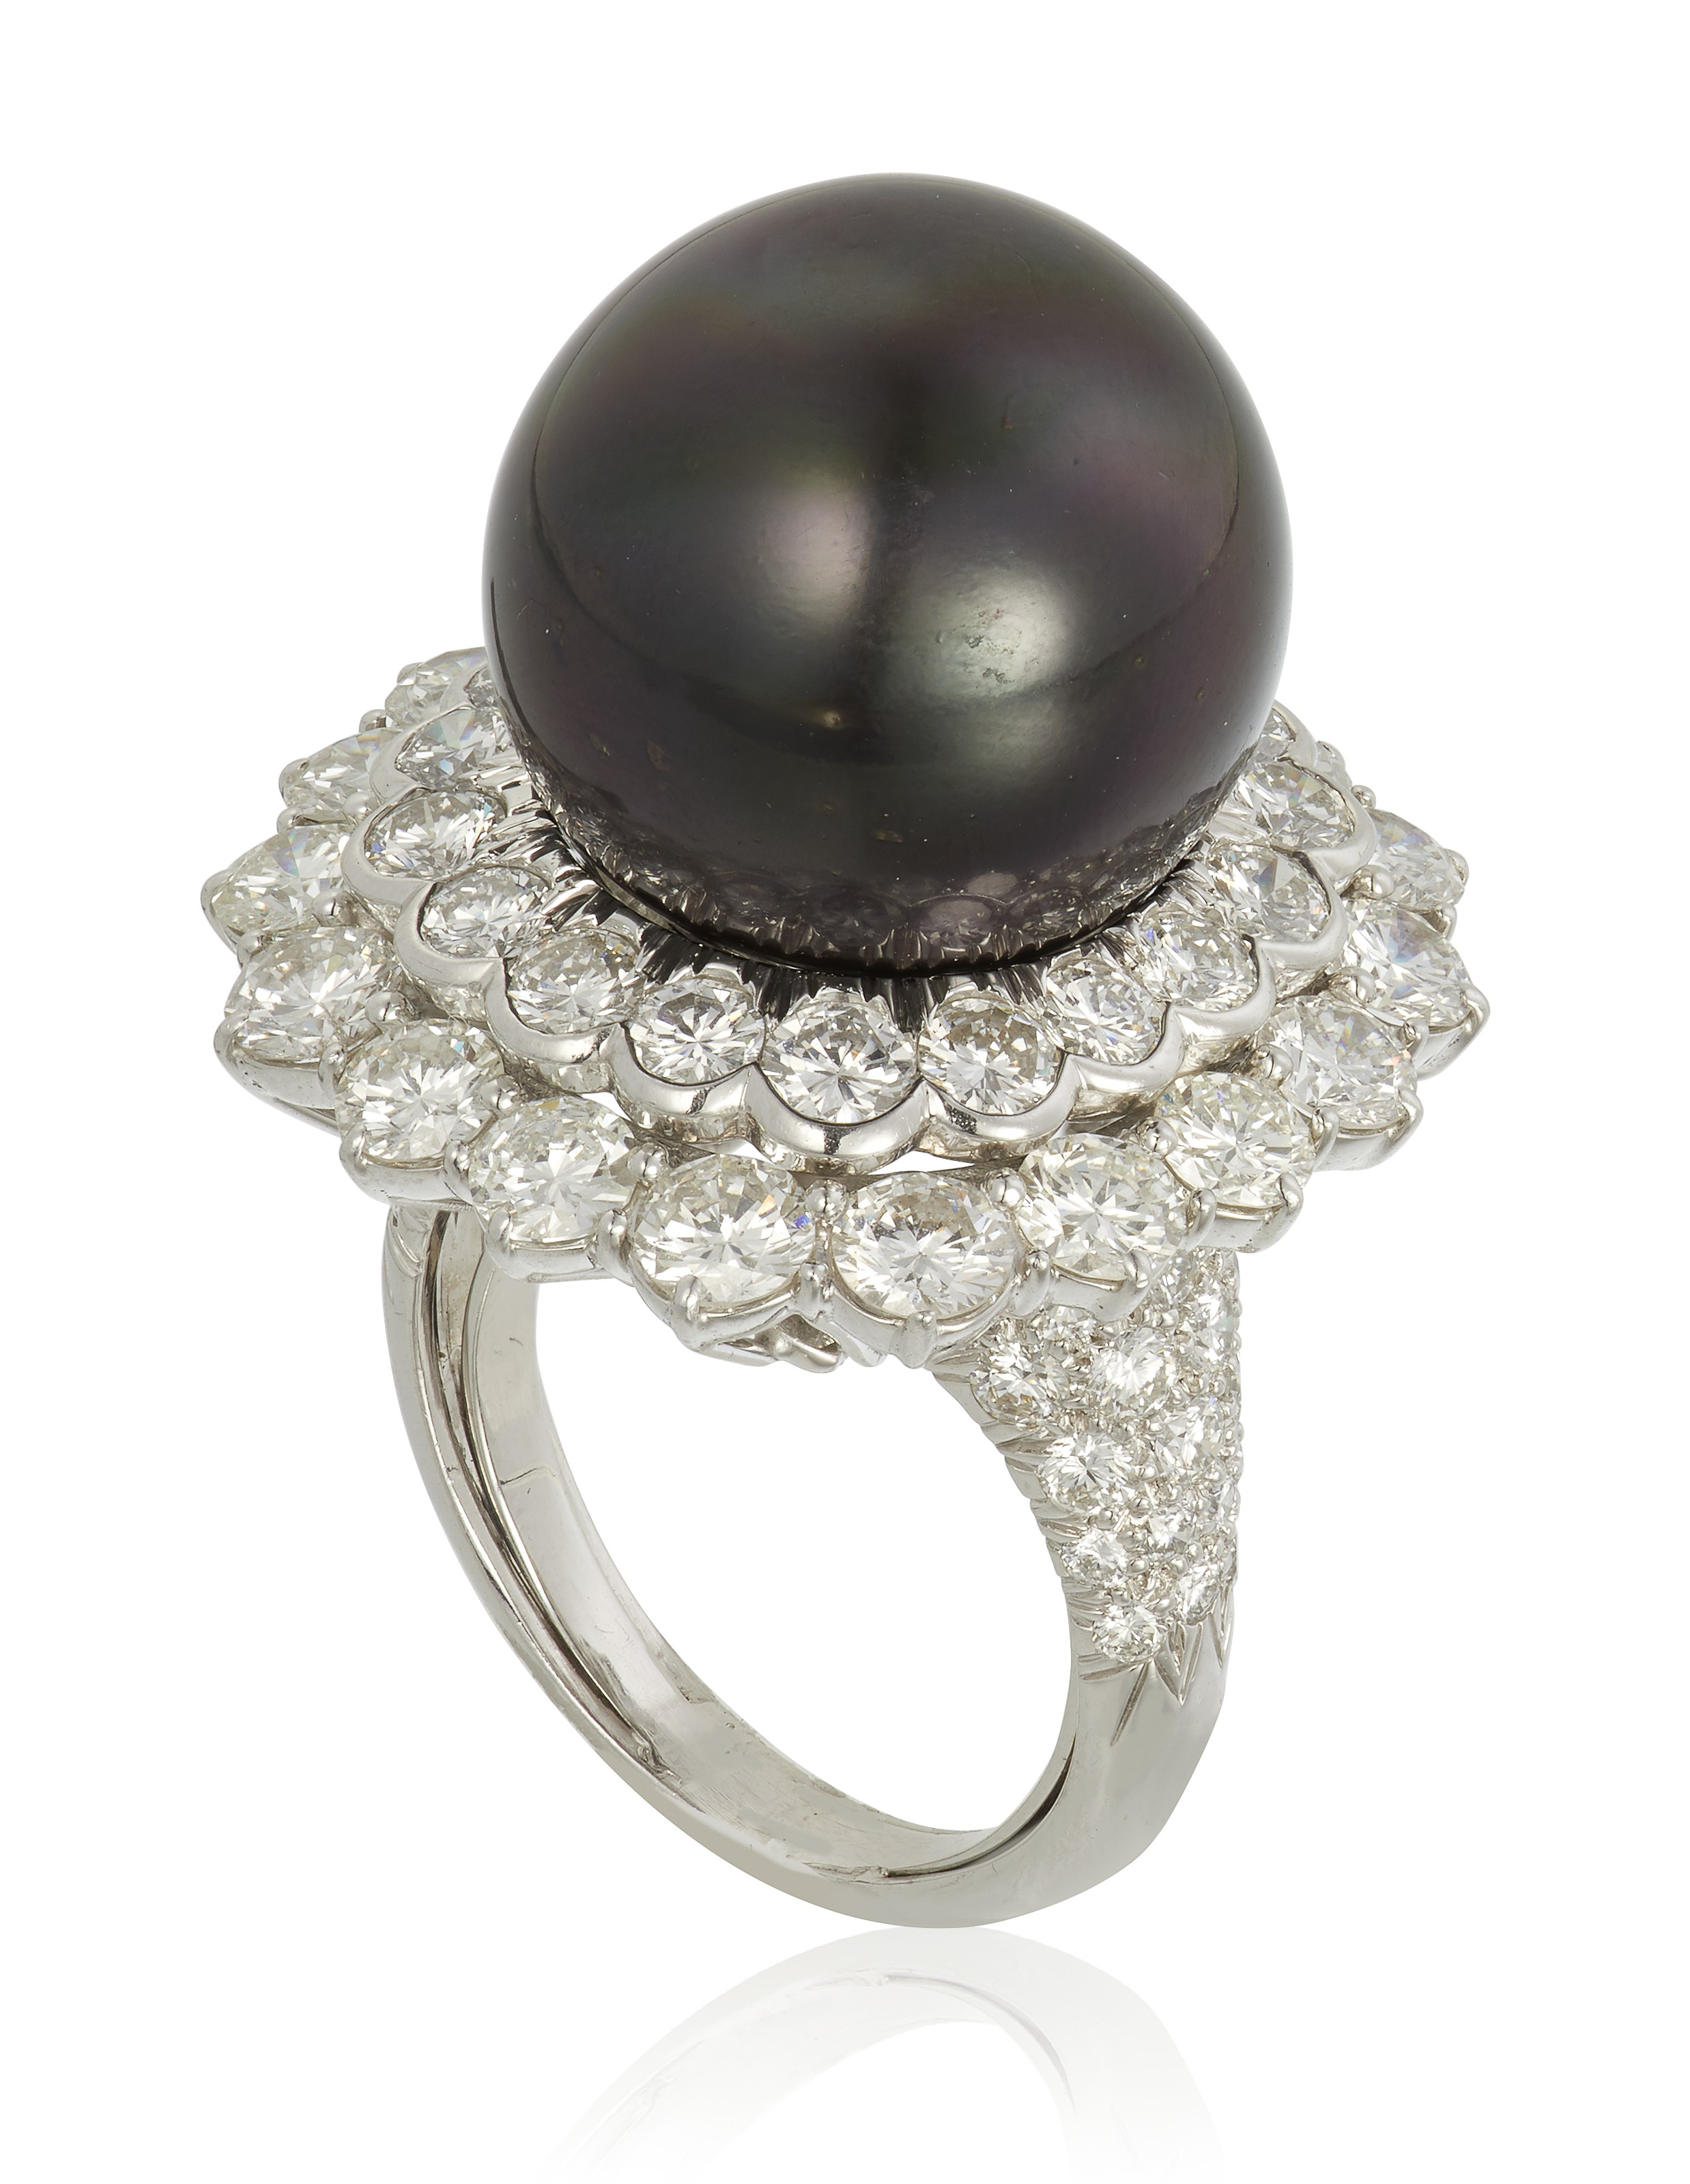 Cultured pearl and diamond ring, by David Webb. Estimate $6,000-8,000. Offered in Jewels Online, until 10 February 2021, Online